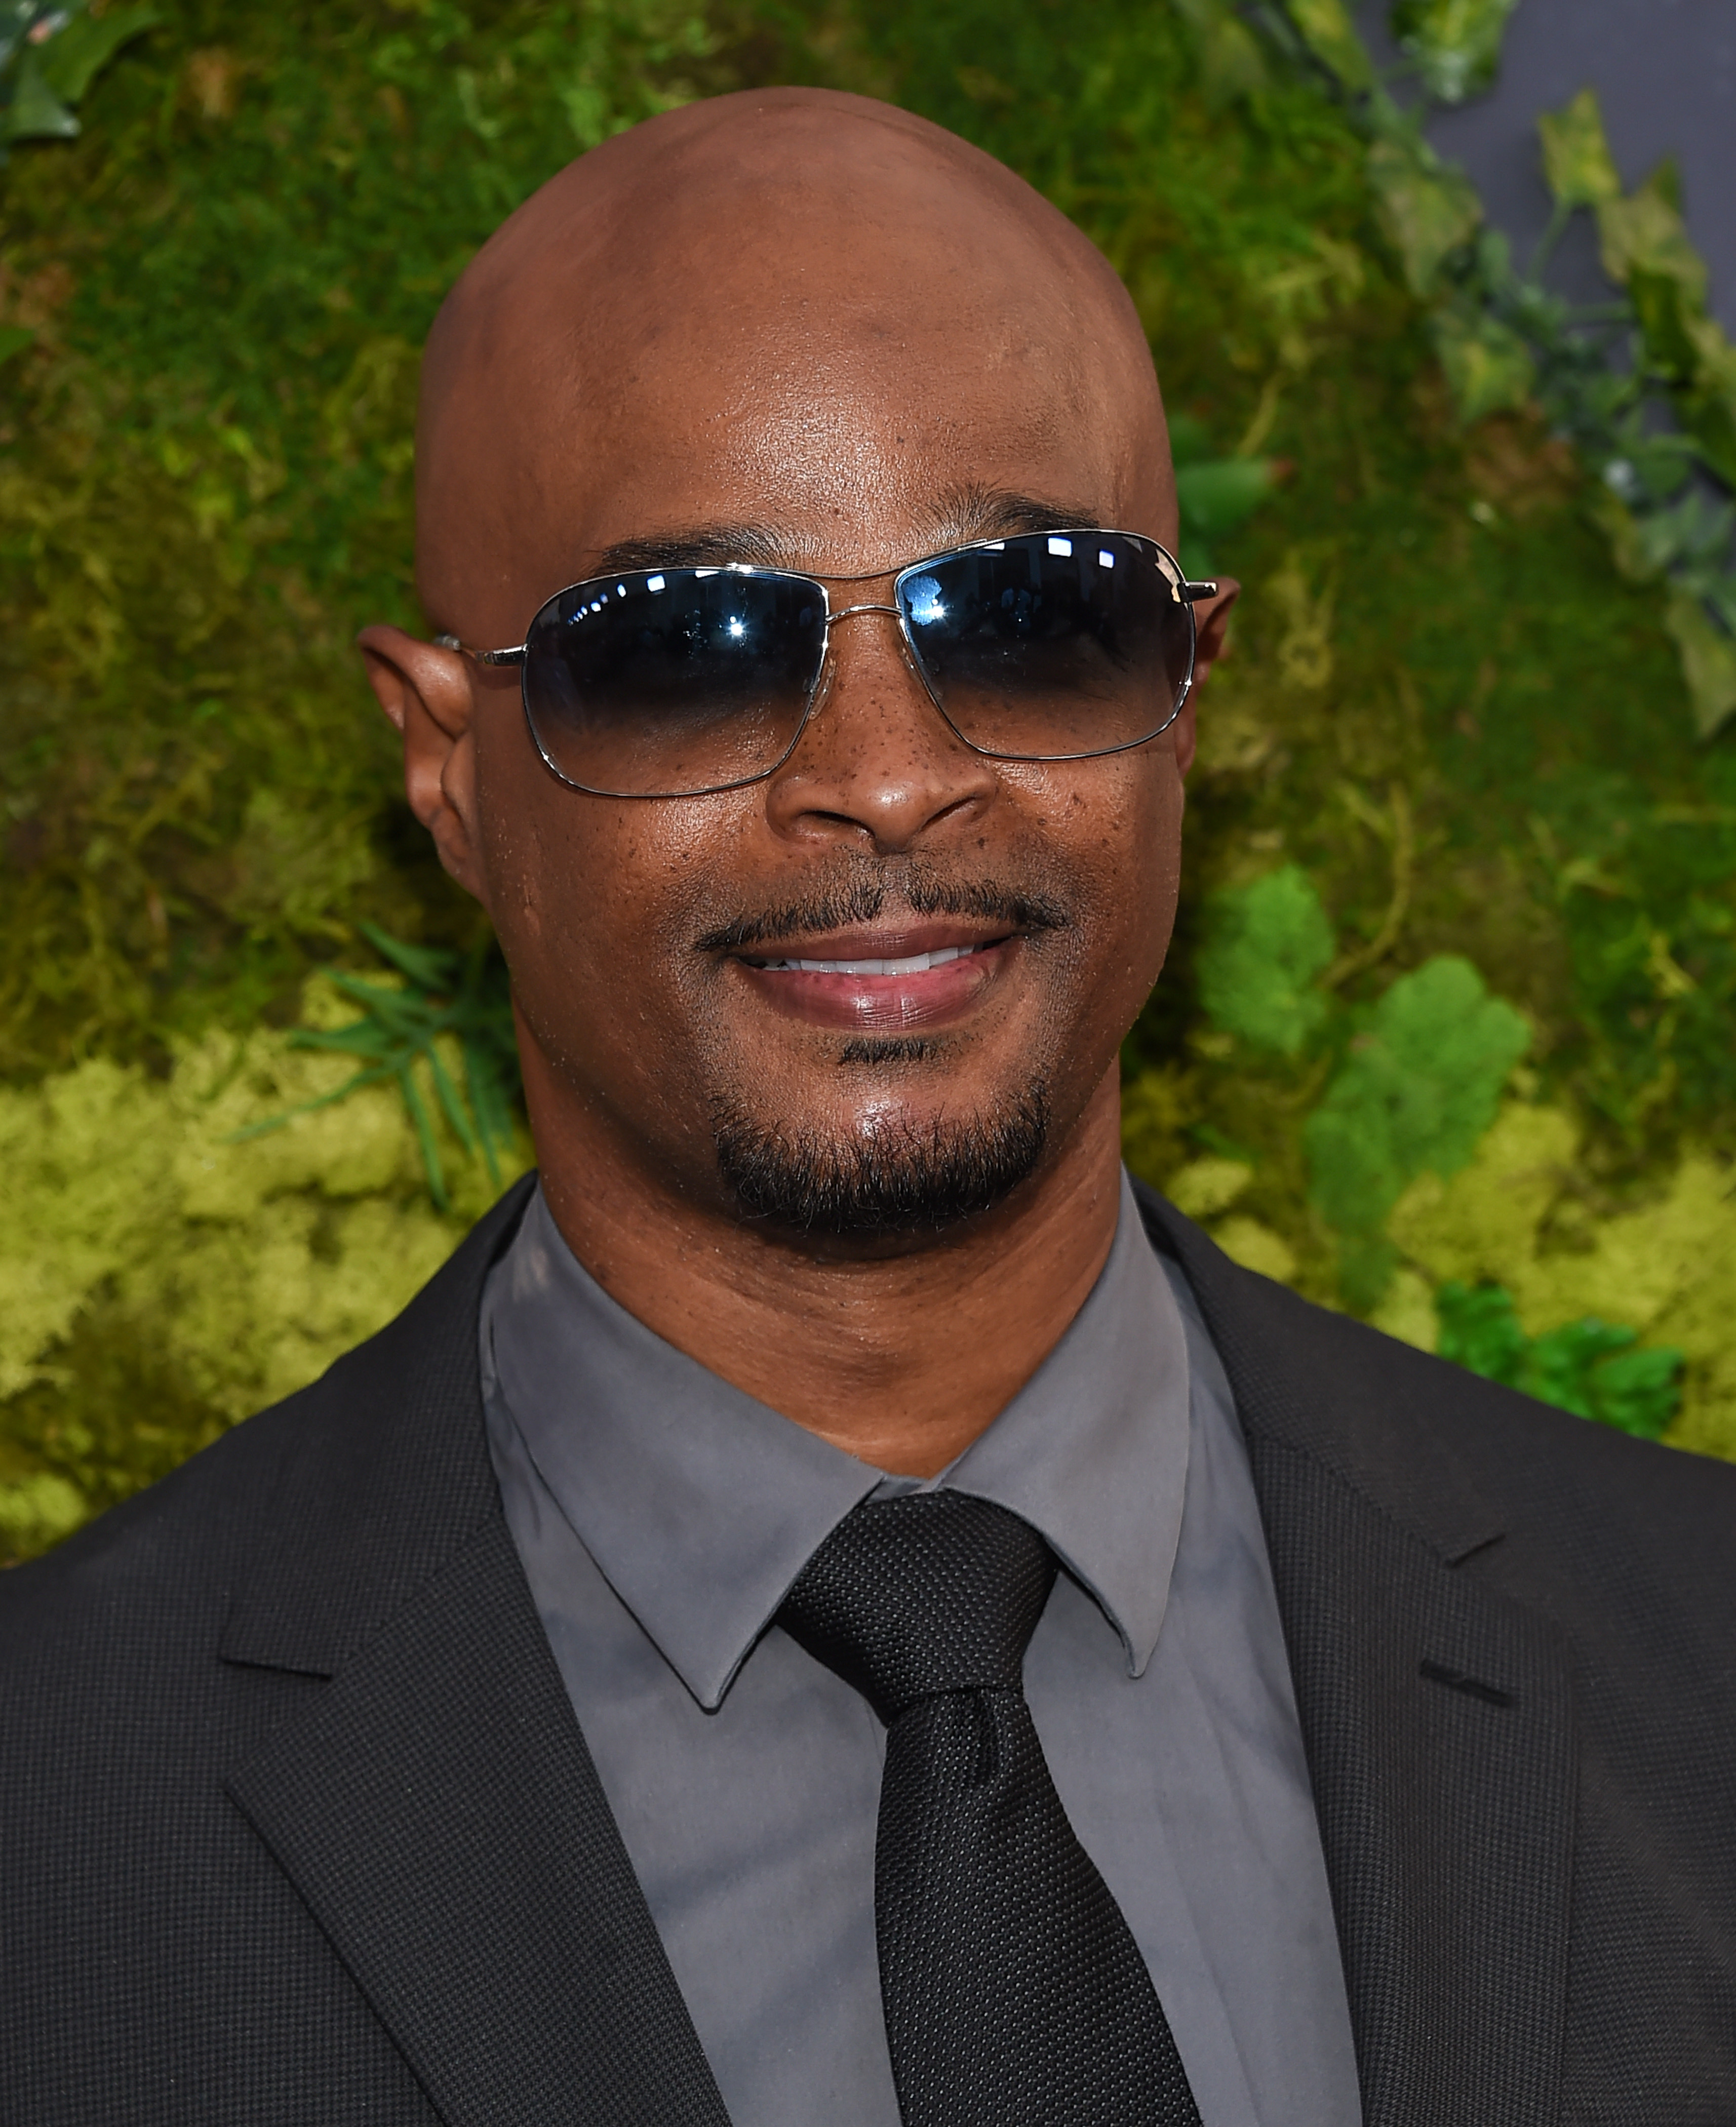 Comedian/Actor Damon Wayans Challenges Dave Chappelle To A 'Verzuz' Comedy Battle?!